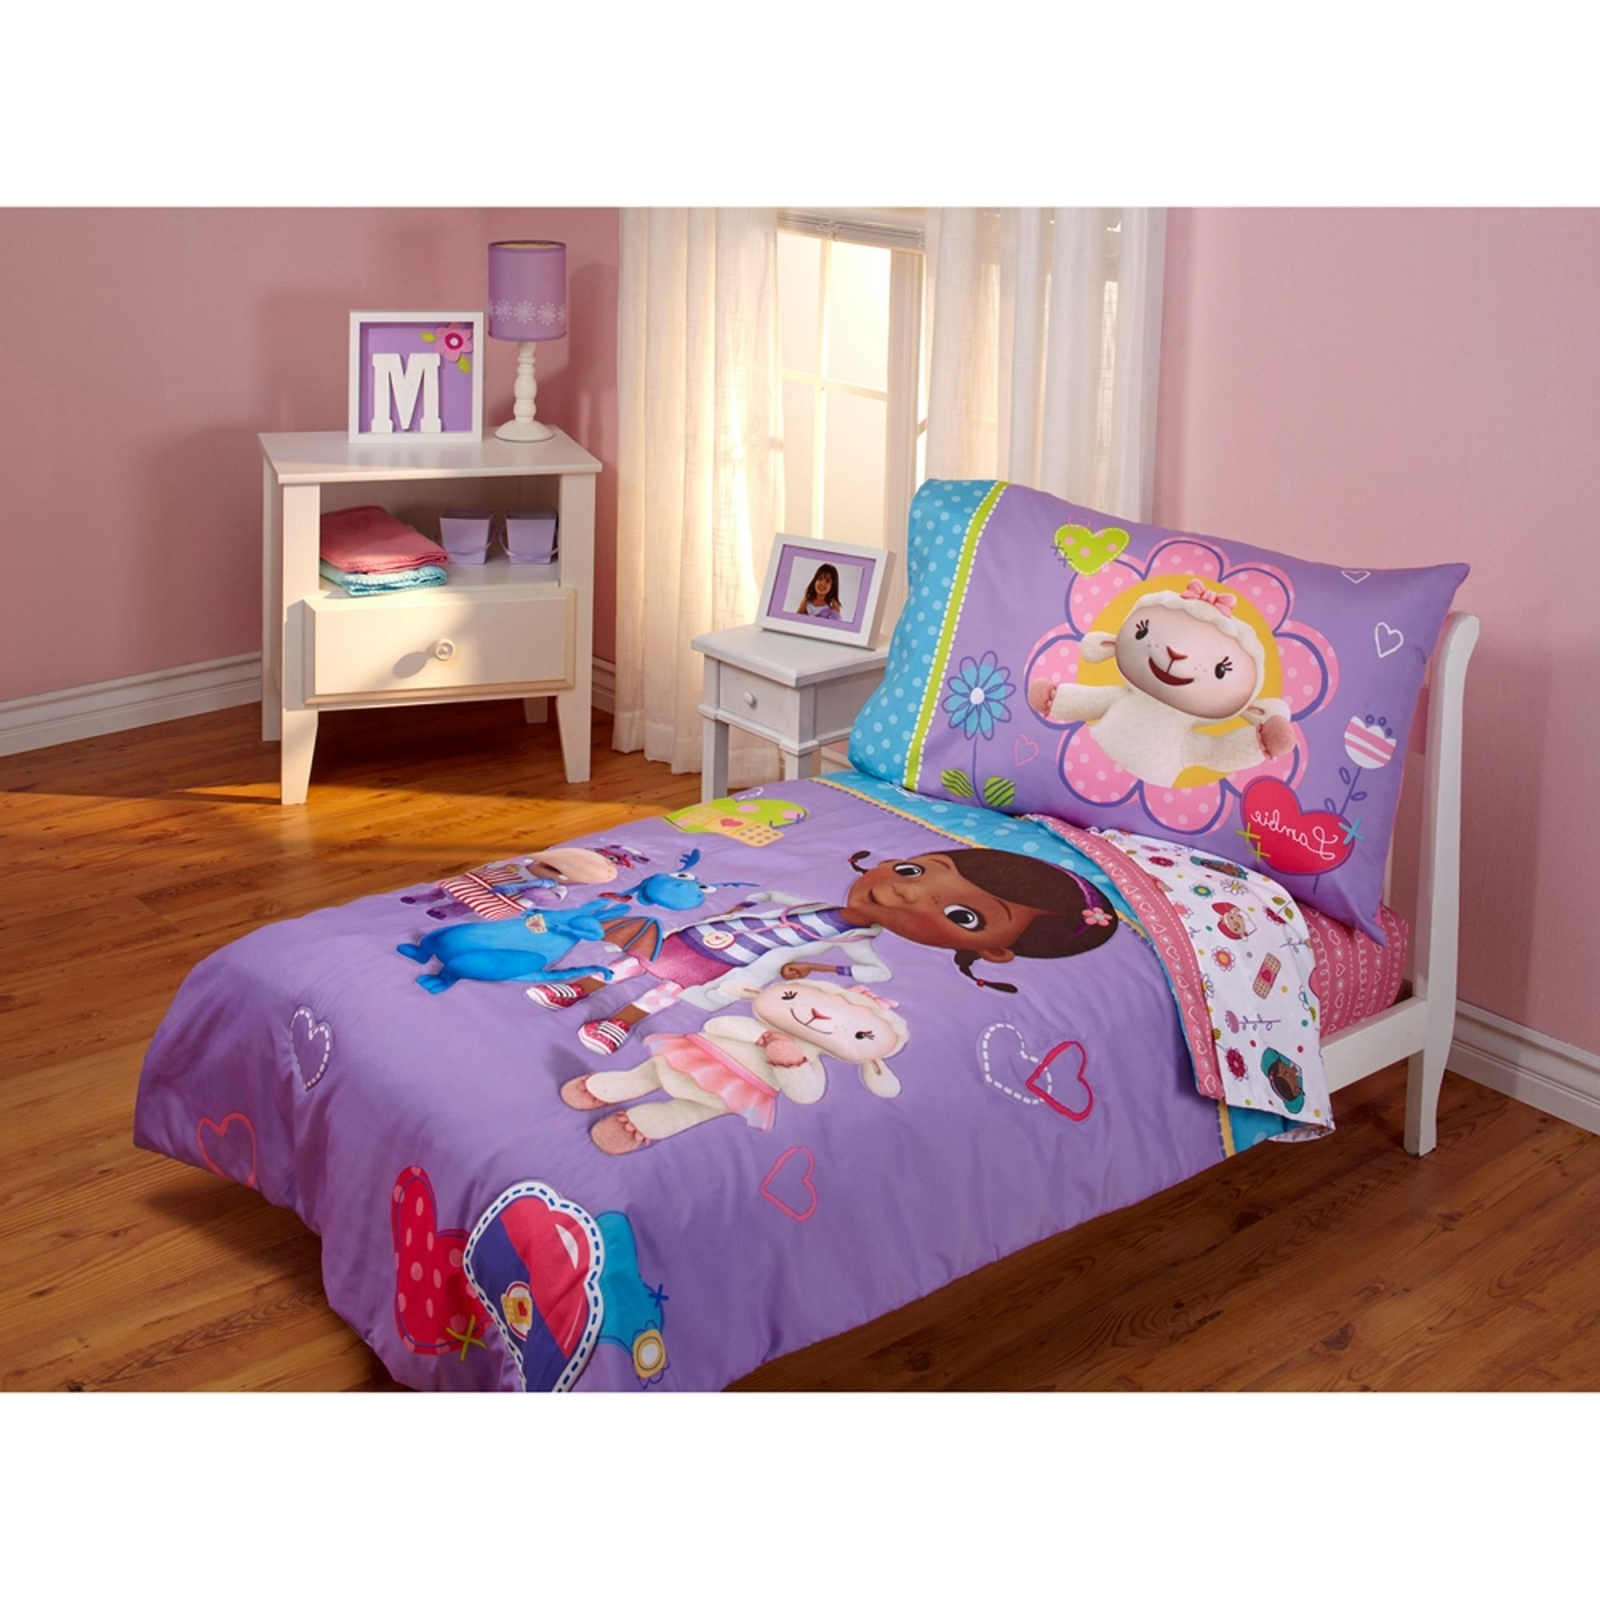 twin bed toddler bedding photo - 4